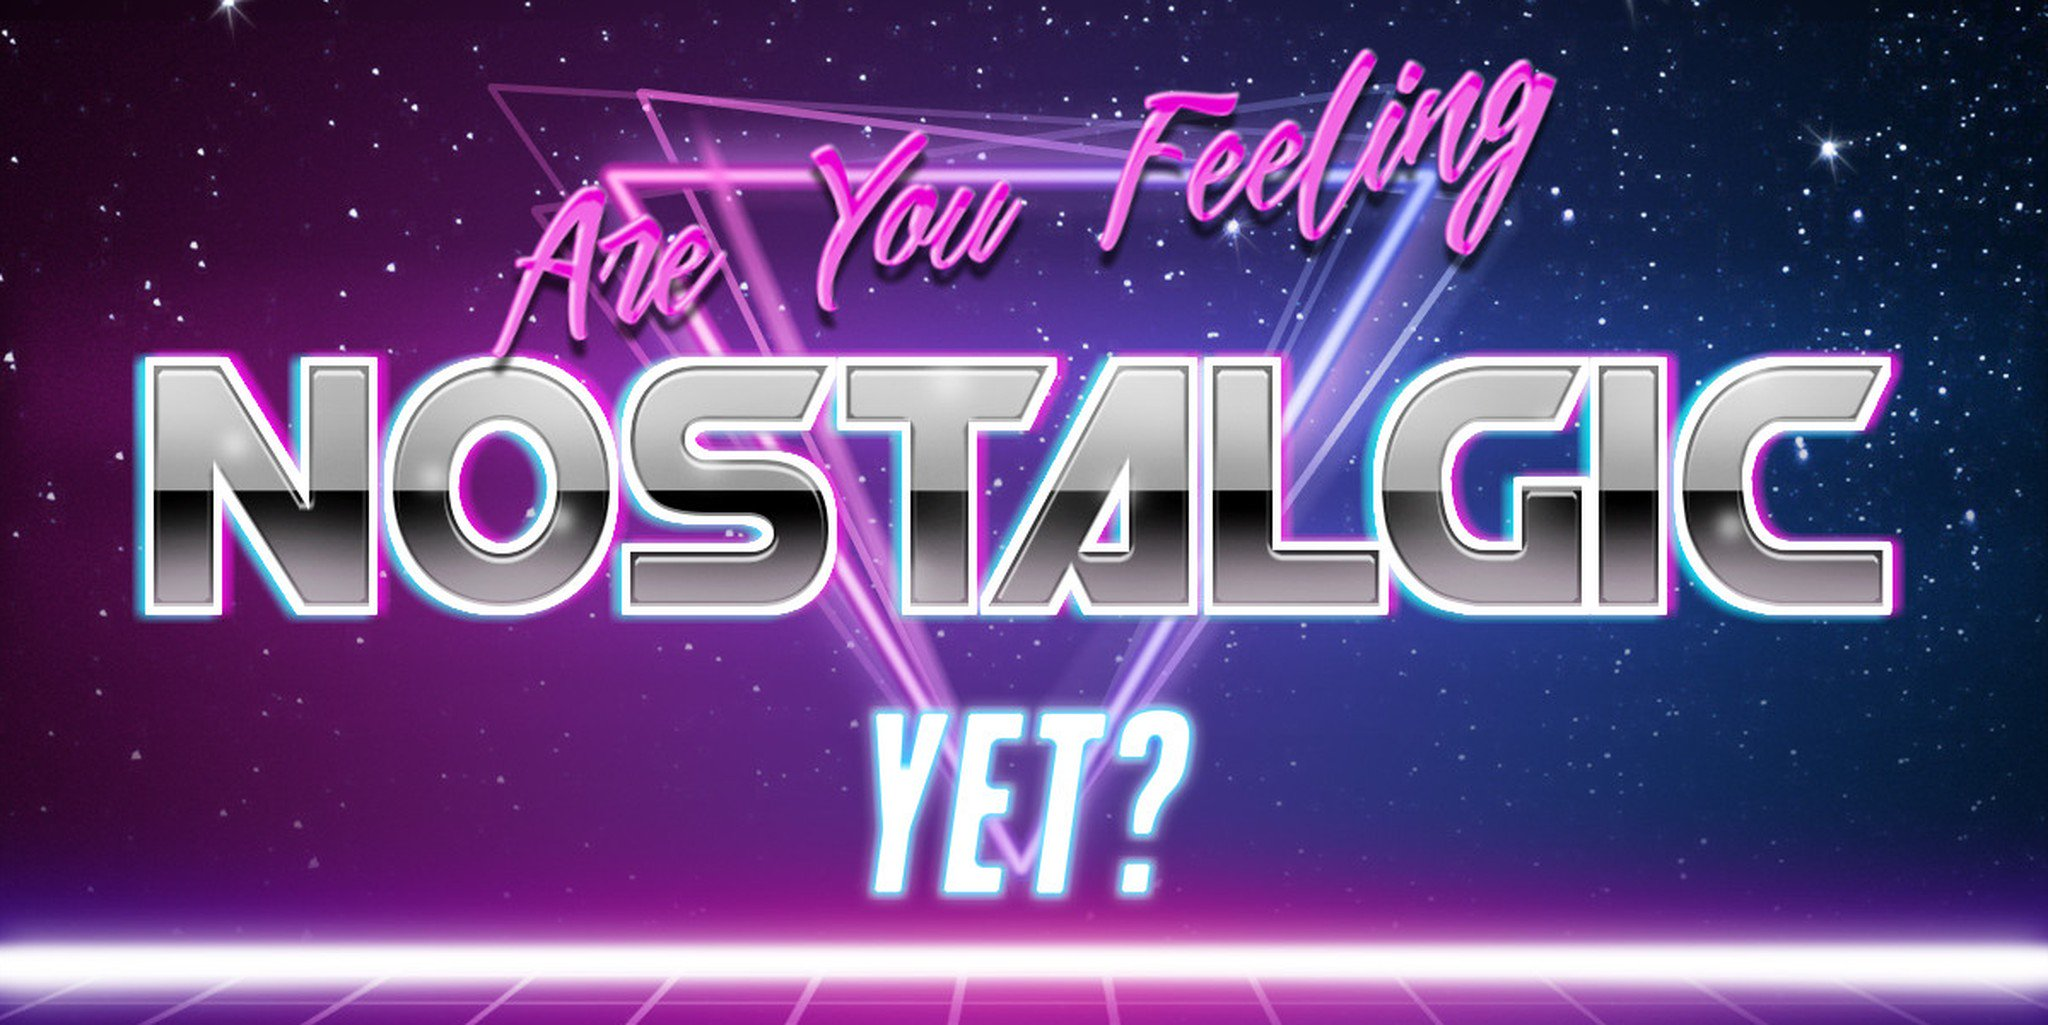 This \'80s Aesthetic Text Generator Is Pretty Rad and Totally.